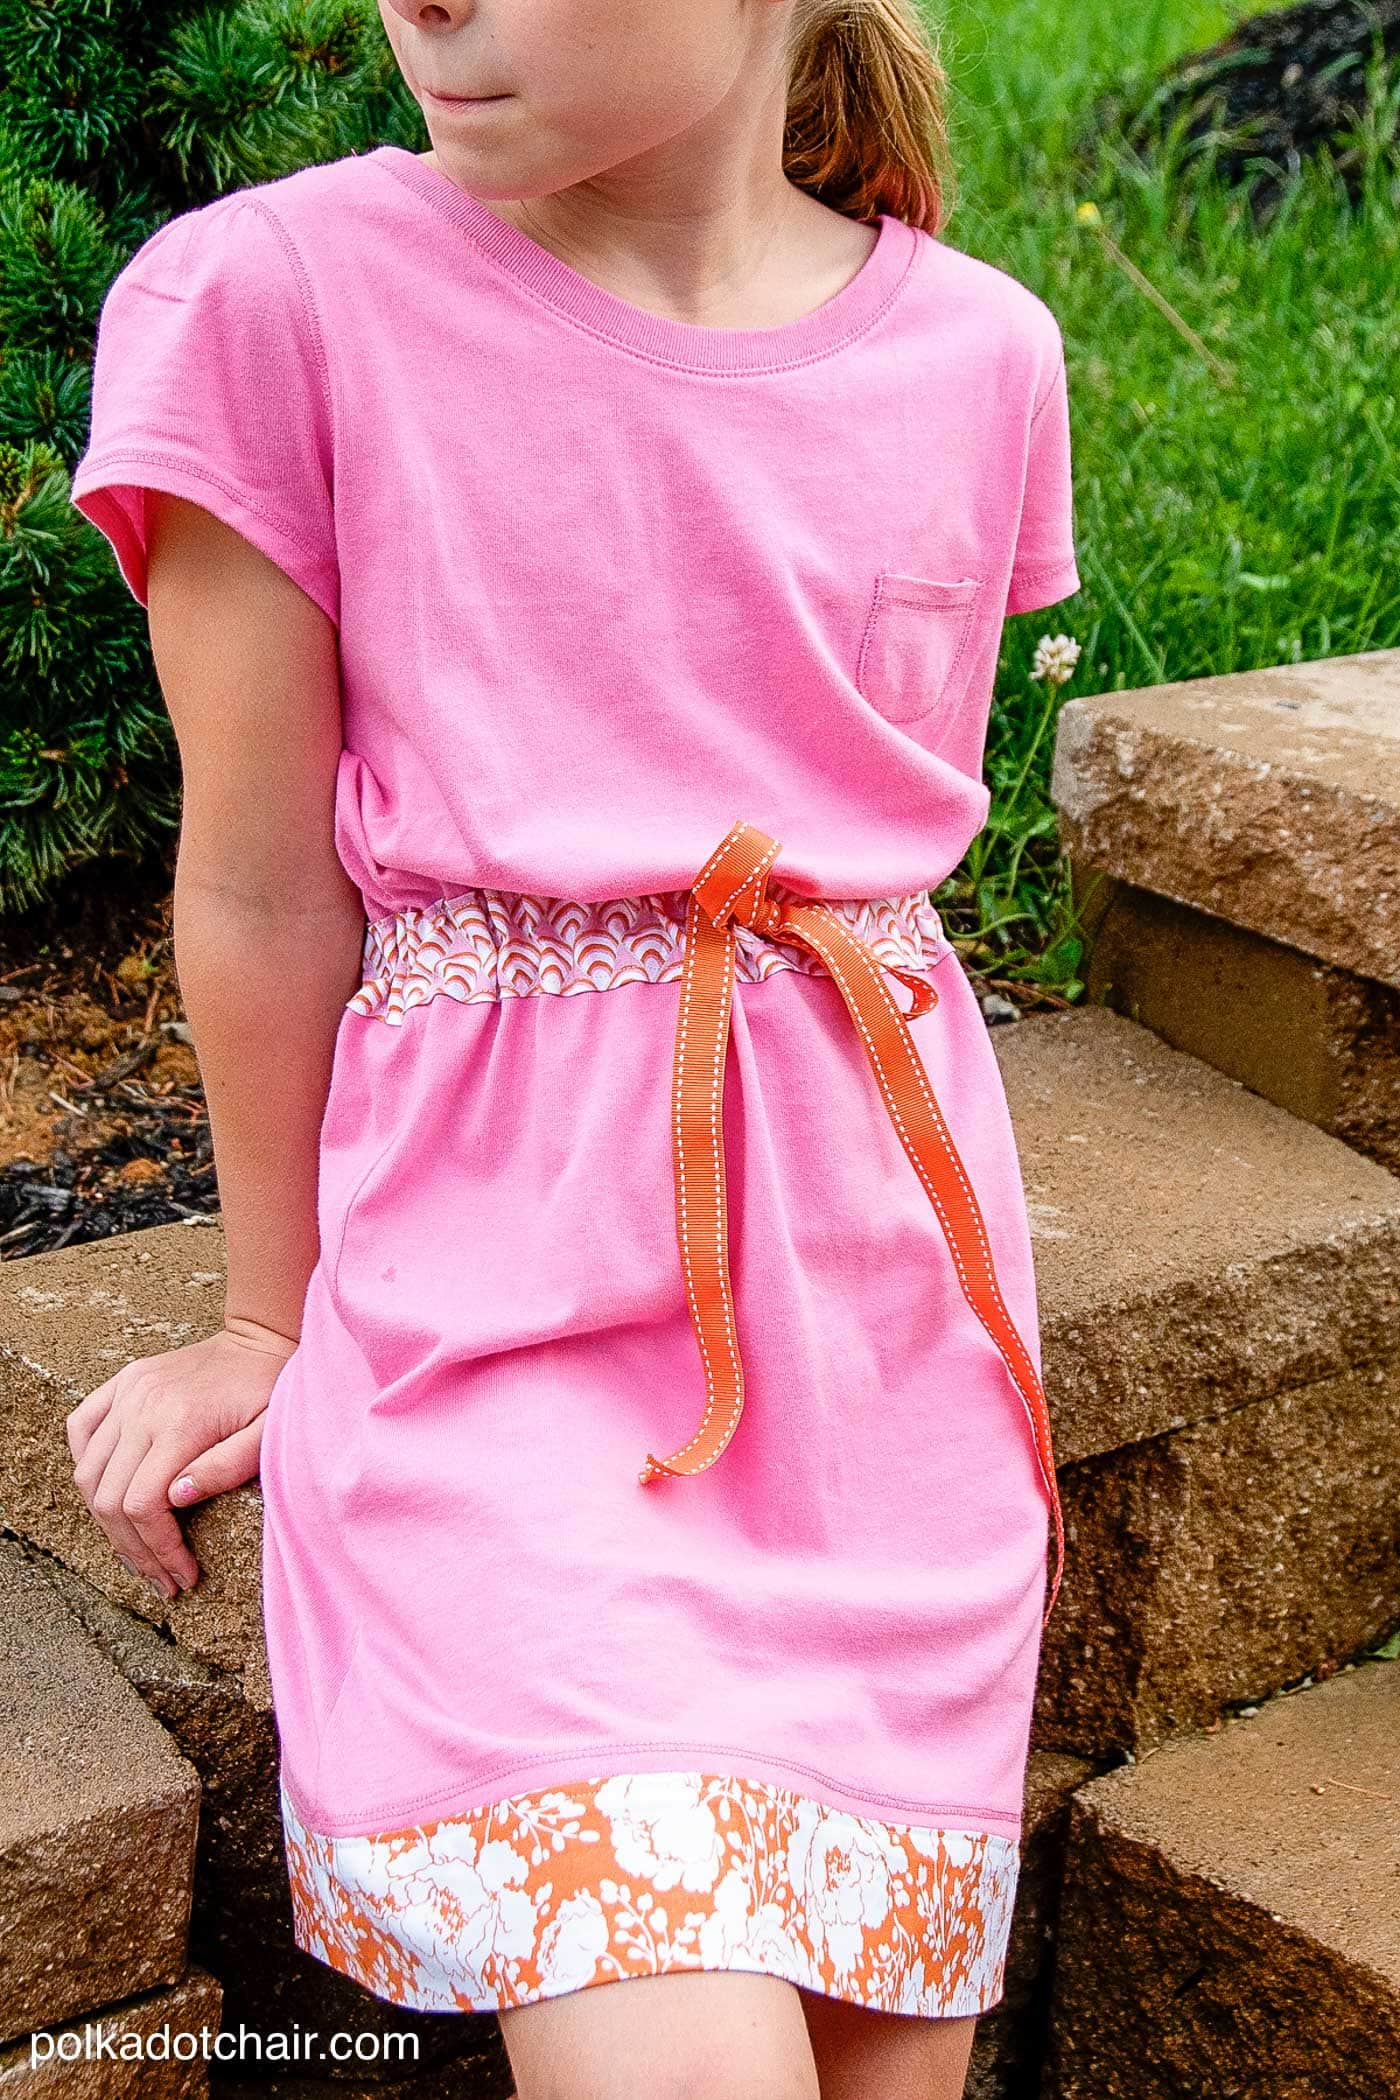 How to Sew a Summer Sundress from Two TShirts